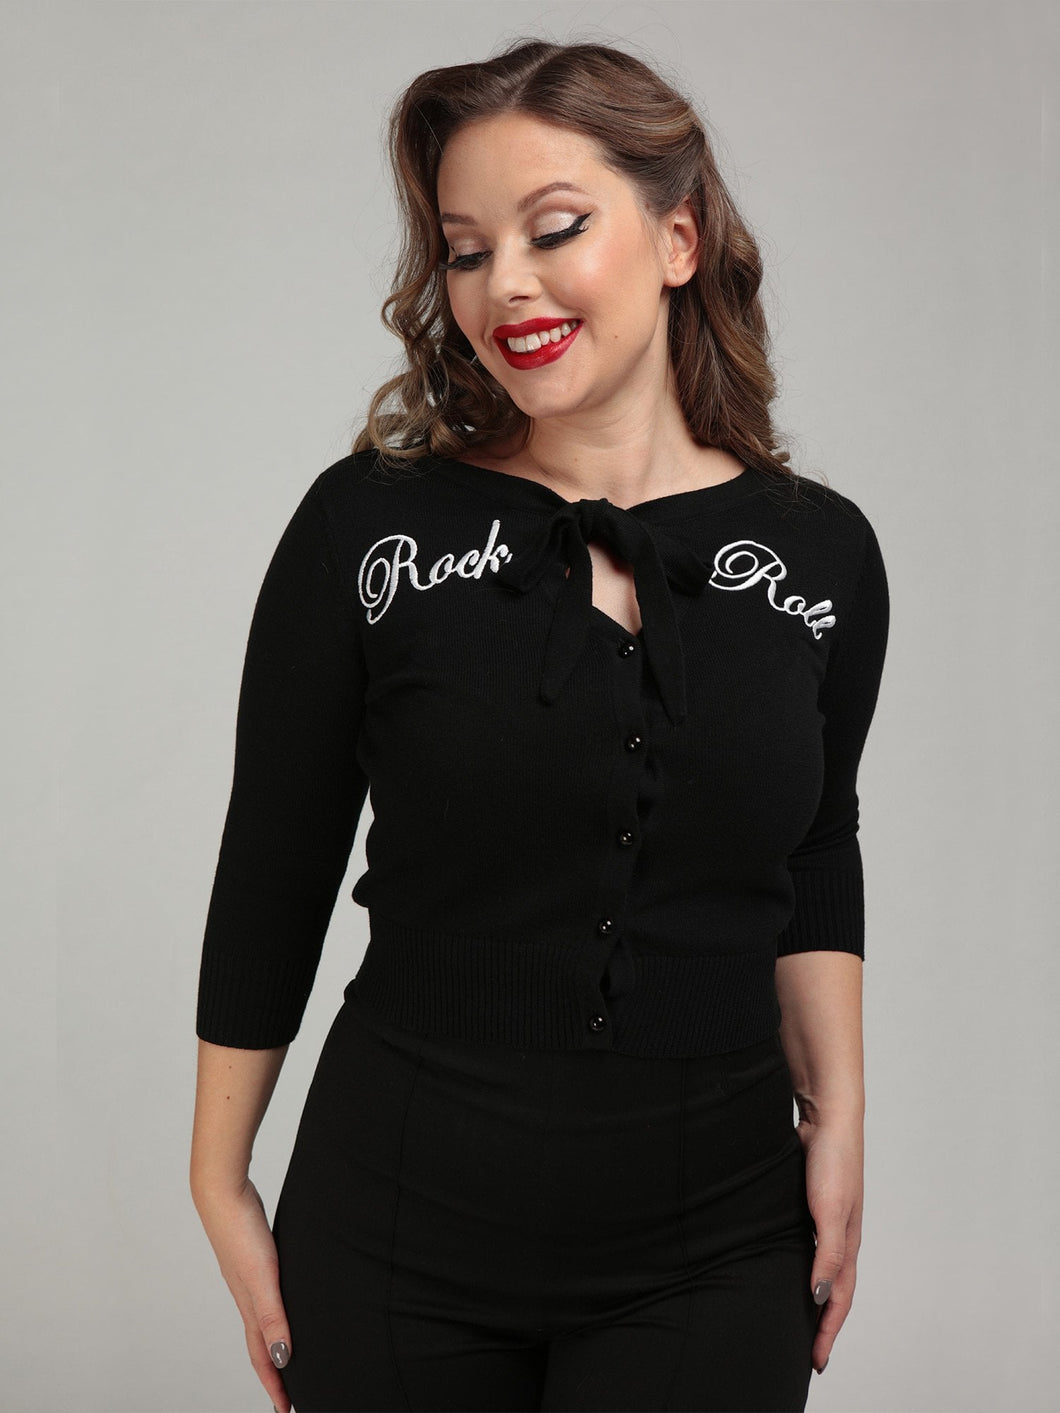 COLLECTIF- ROCK AND ROLL CARDIGAN